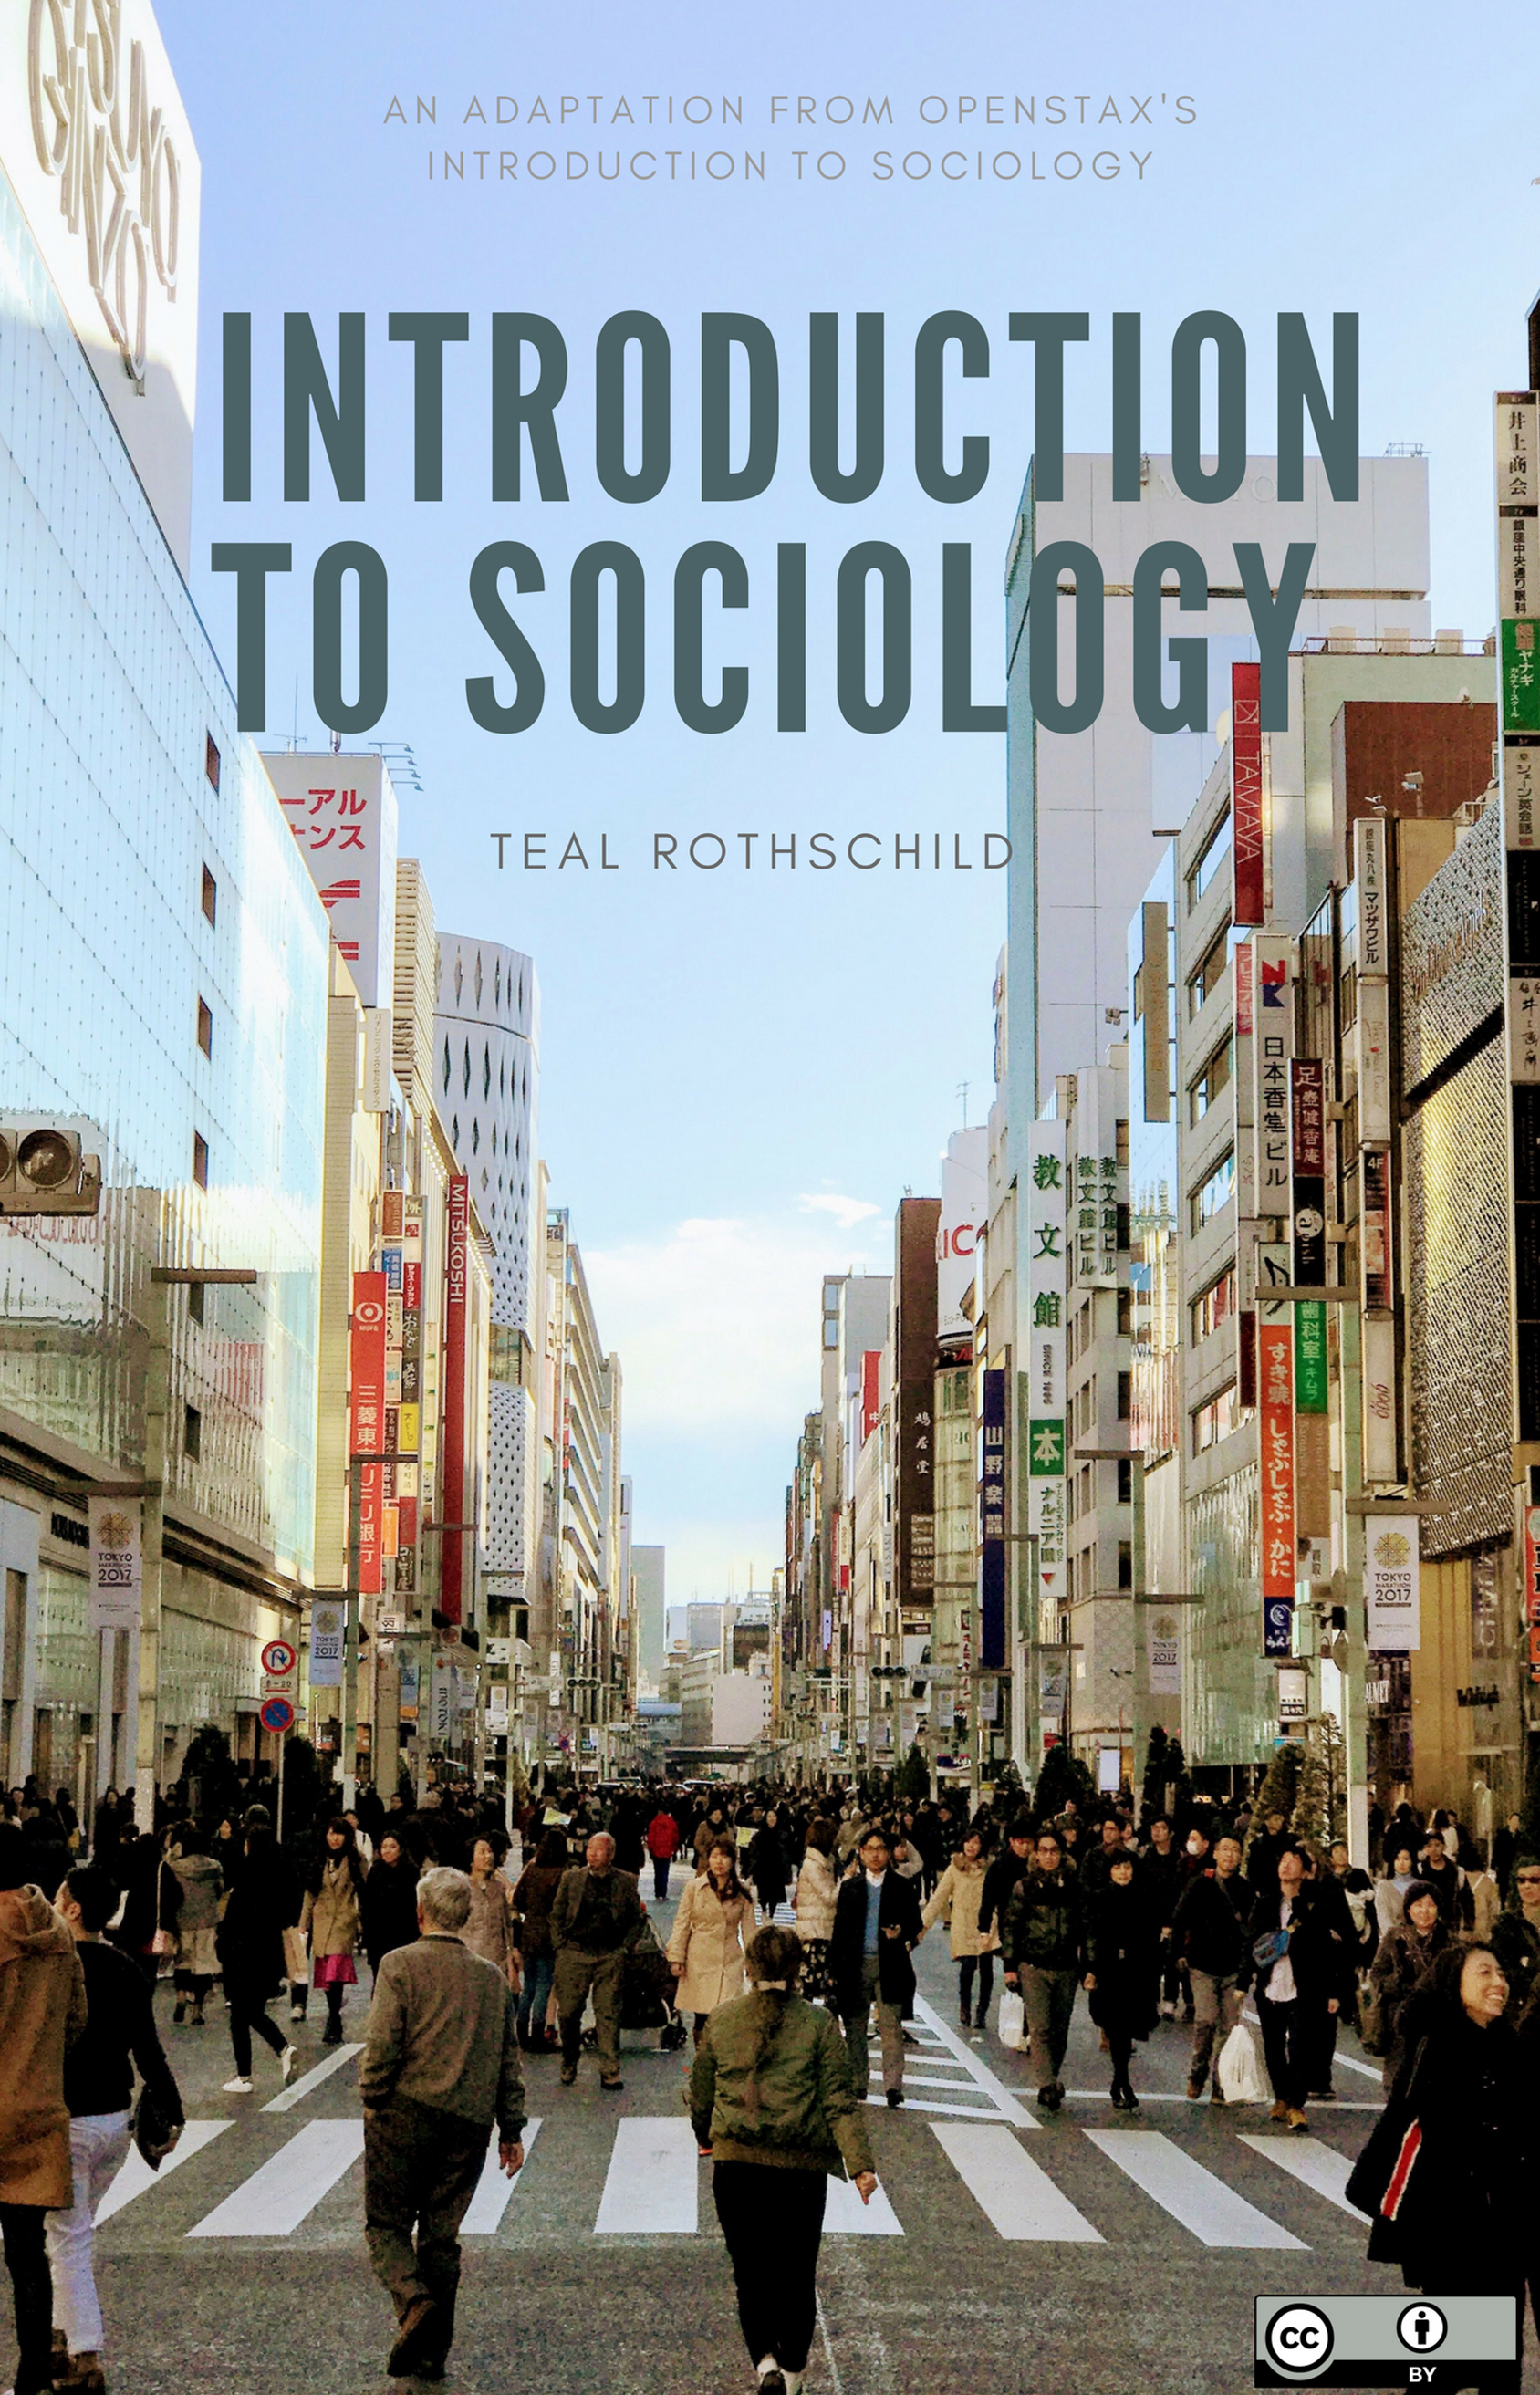 Cover image for Rothschild's Introduction to Sociology